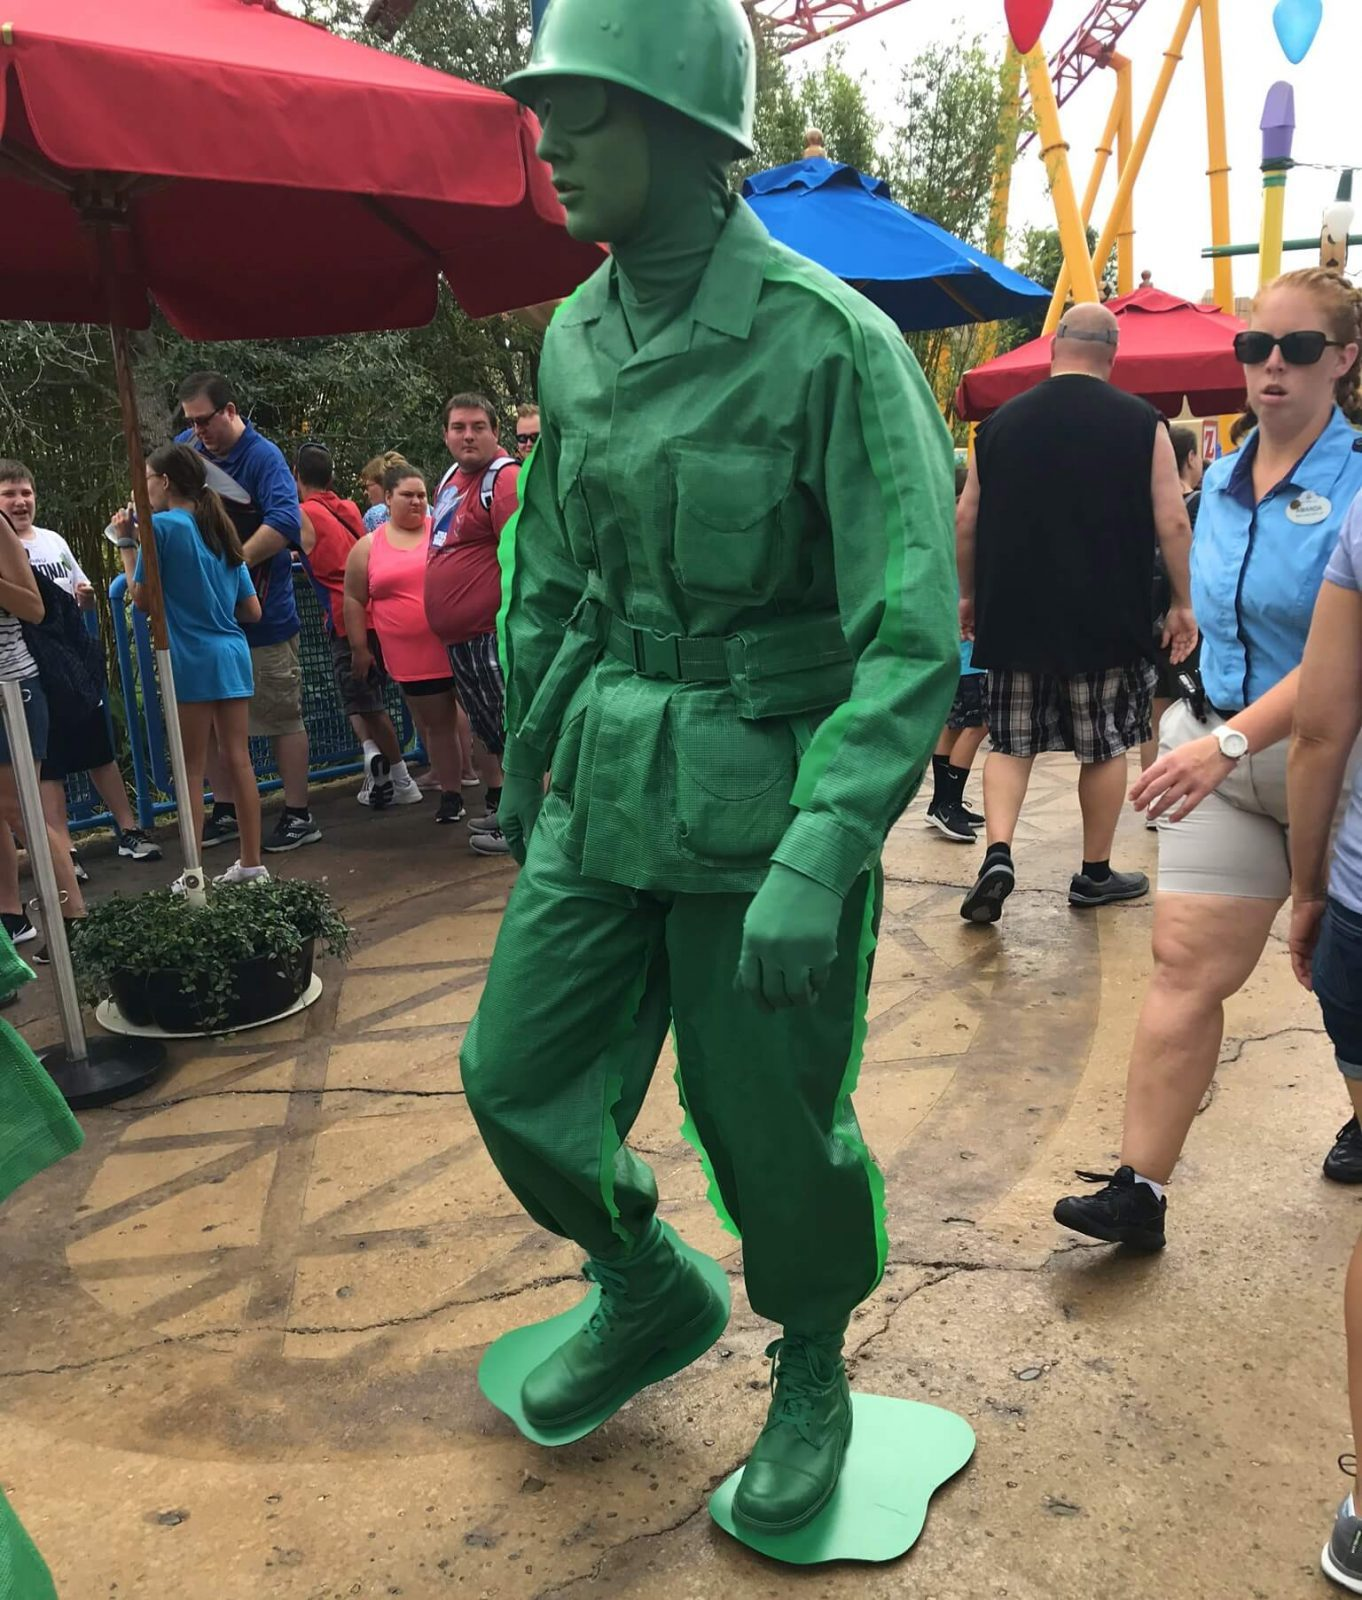 disney character green army man walking around toy story land